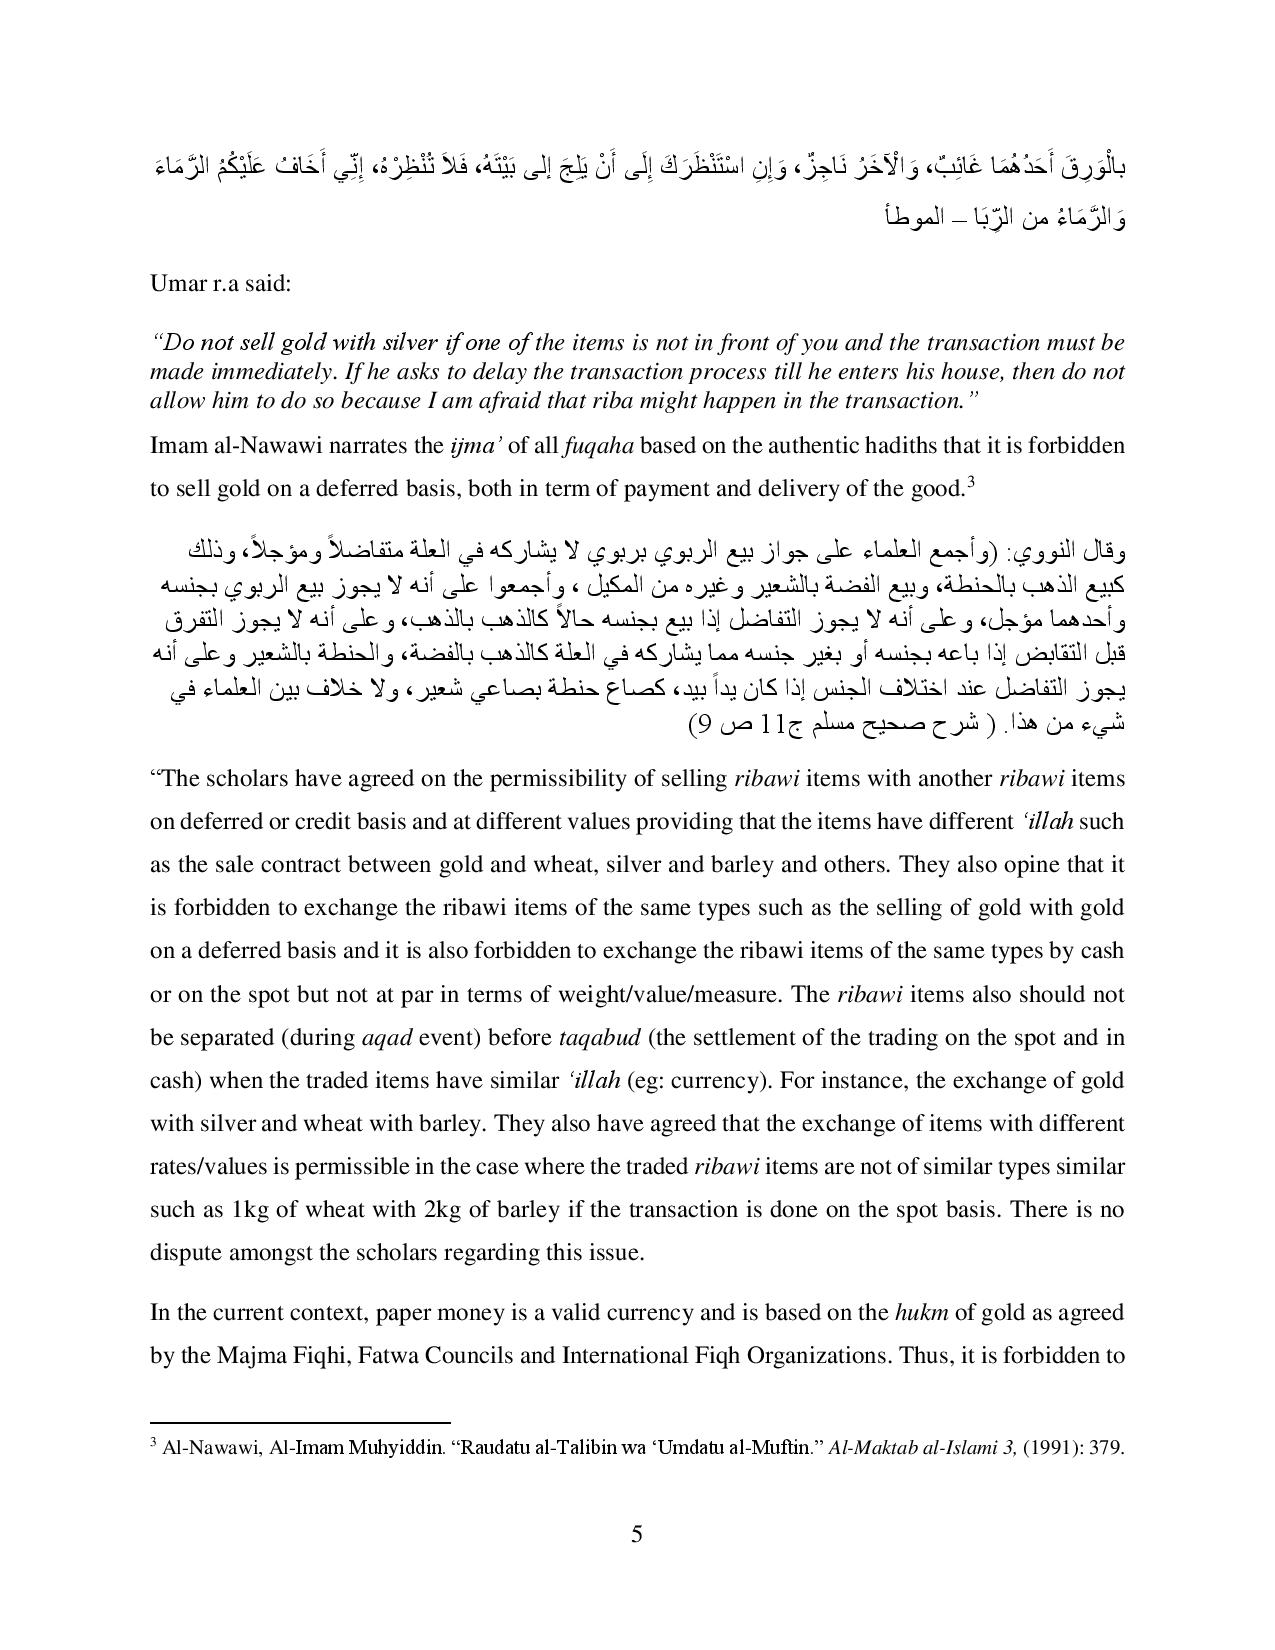 Gold Trading Shariah Issue-page-005